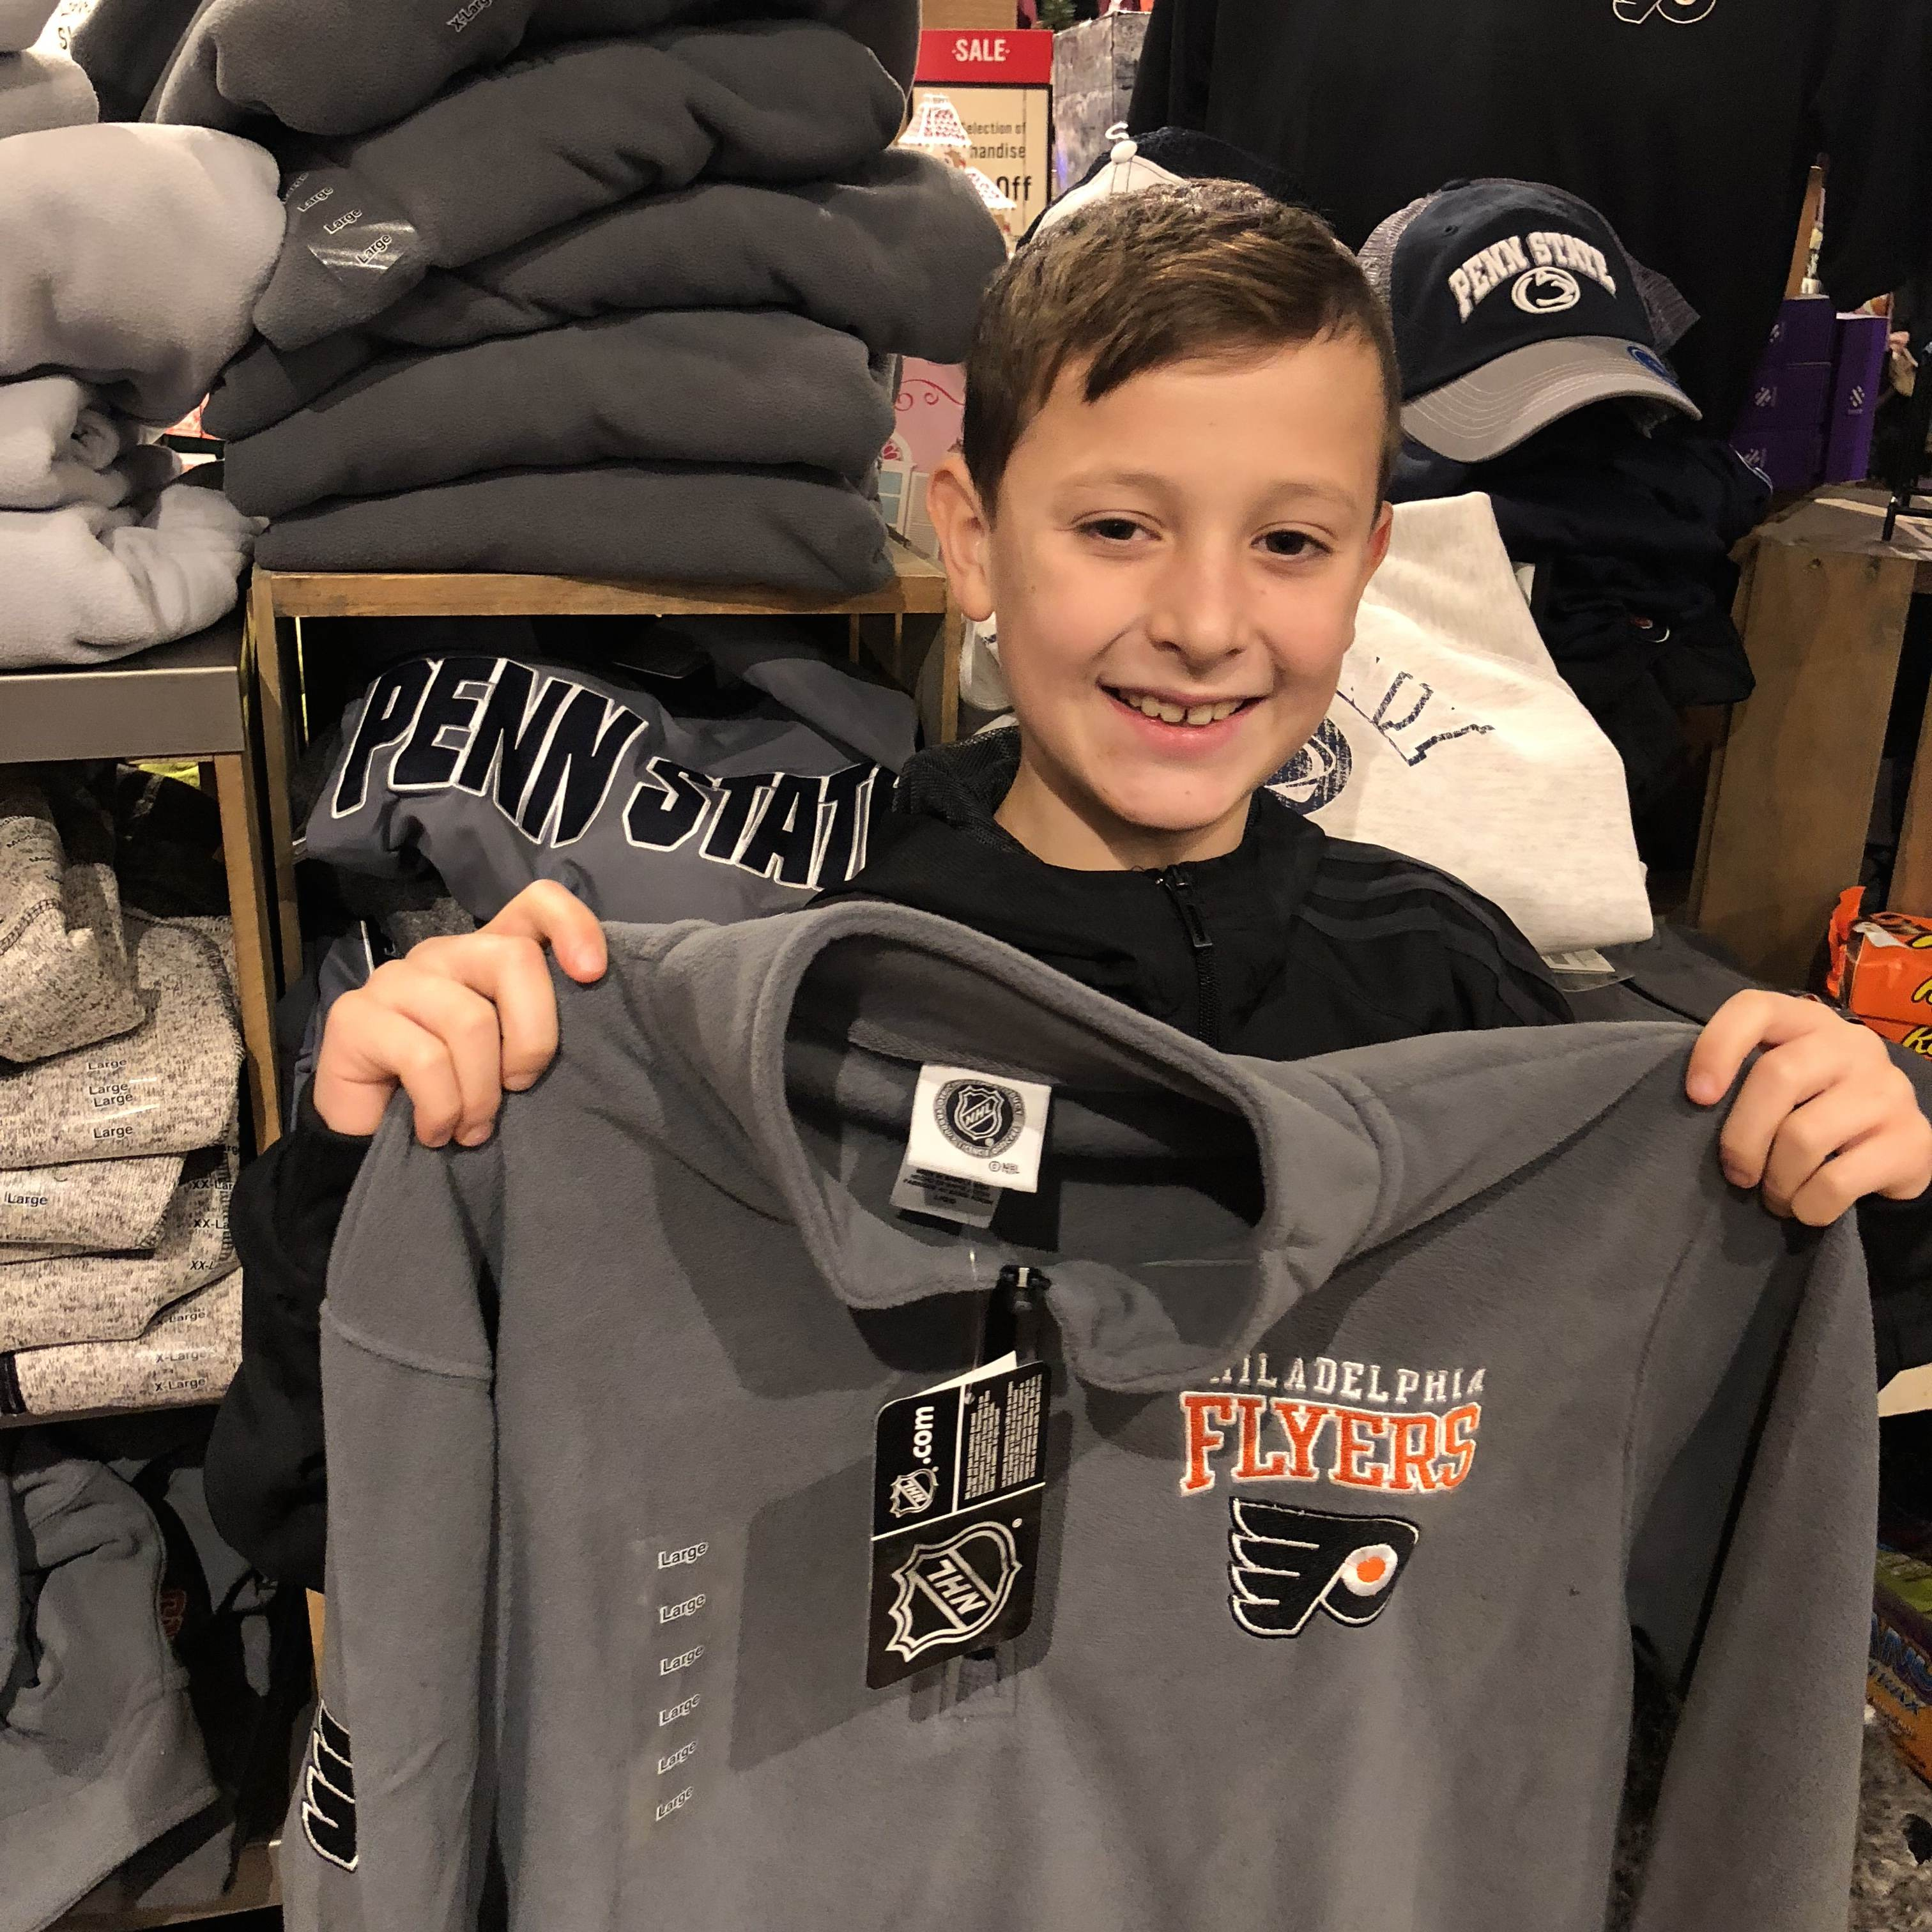 Surprising holiday gifts at Cracker Barrel: Flyers gear| sponsor